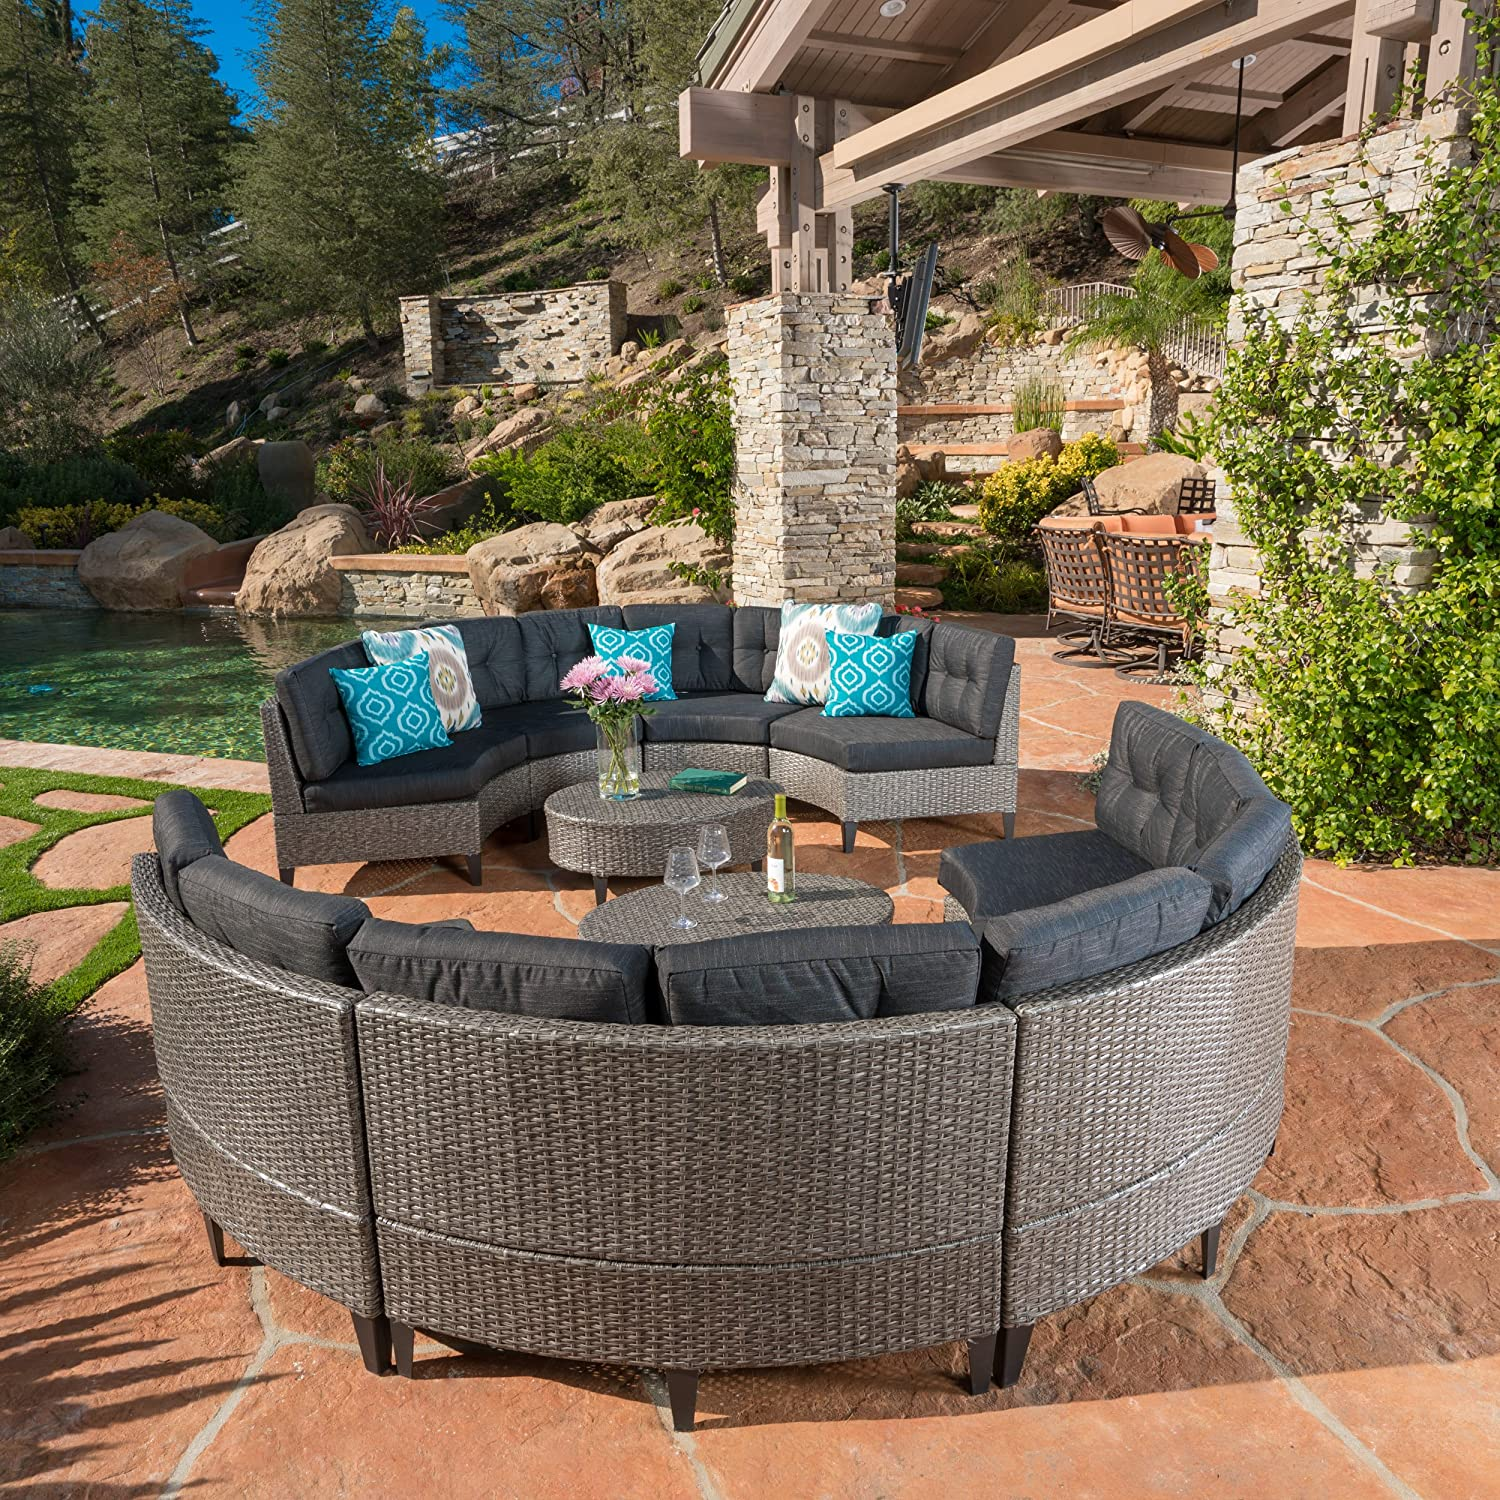 Amazon Currituck Outdoor Wicker Patio Furniture 10 Piece